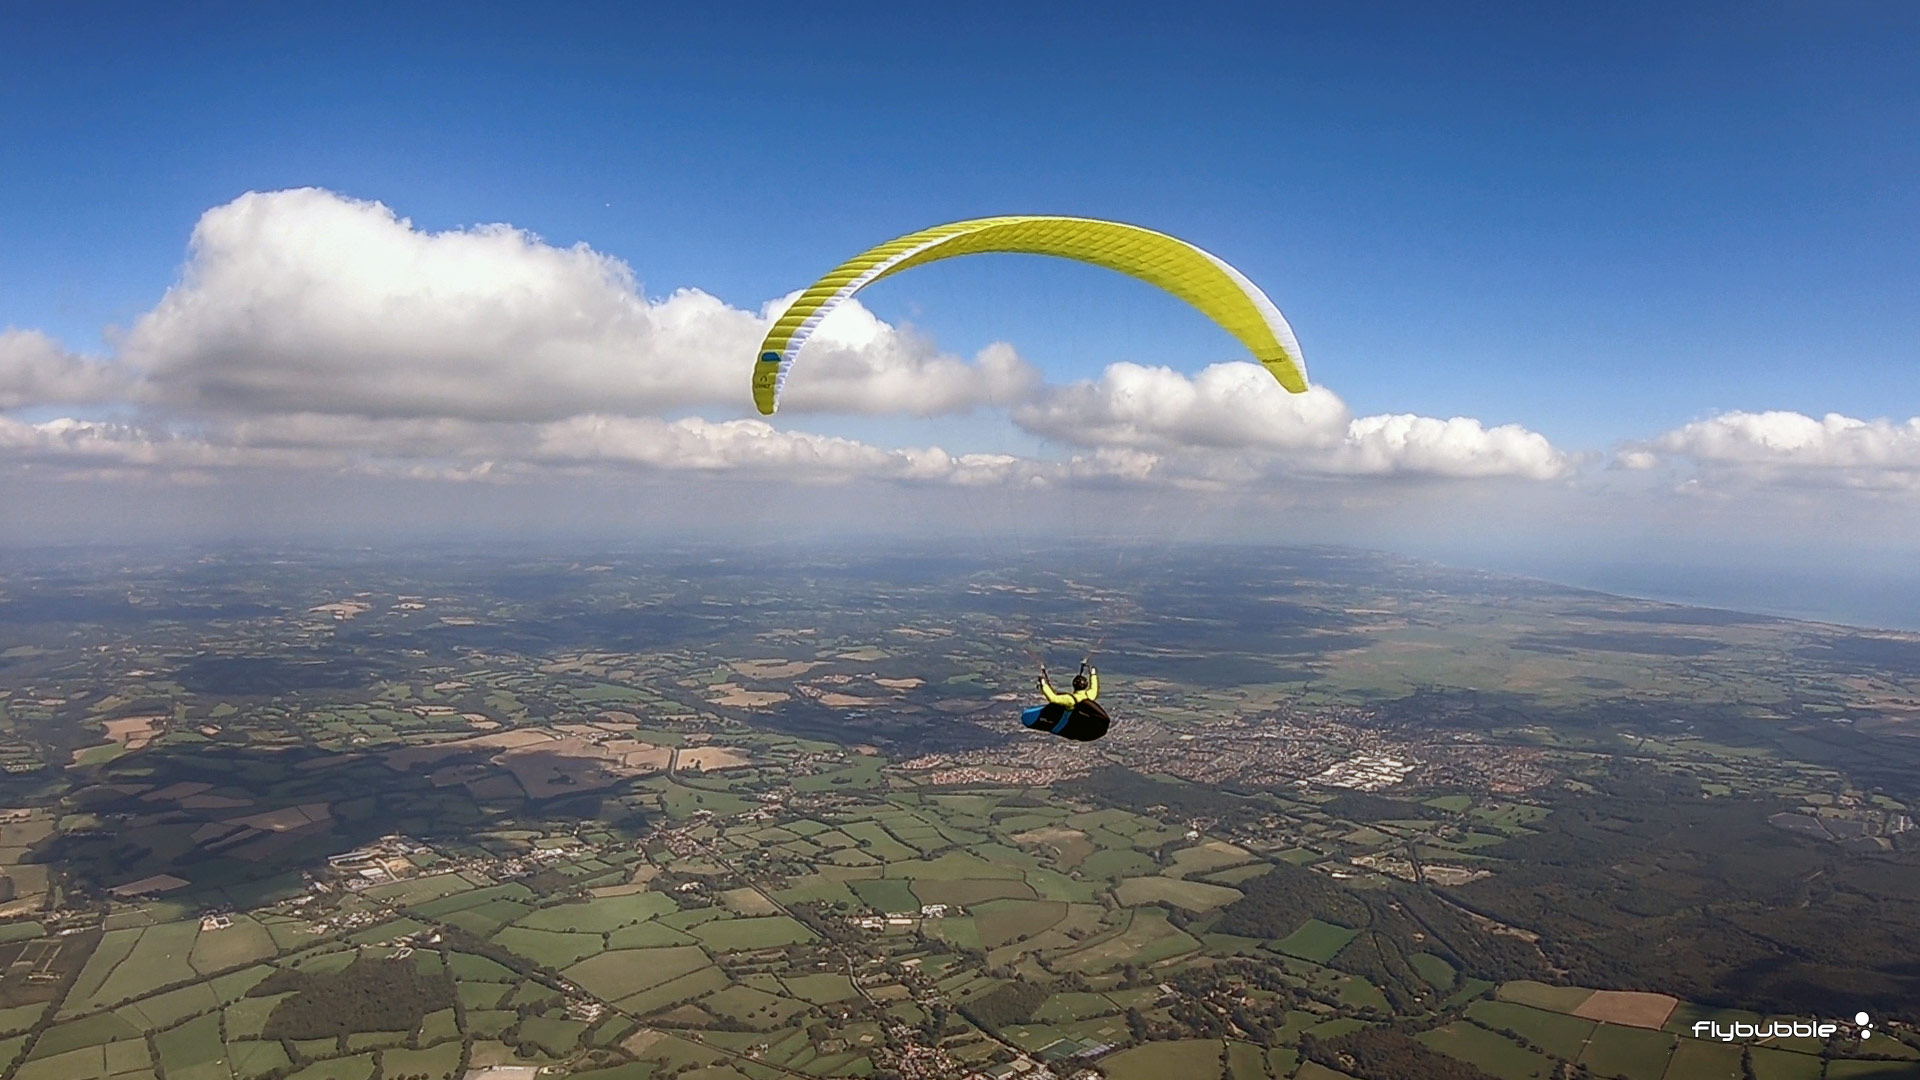 Advance XI paraglider review: high trim speed